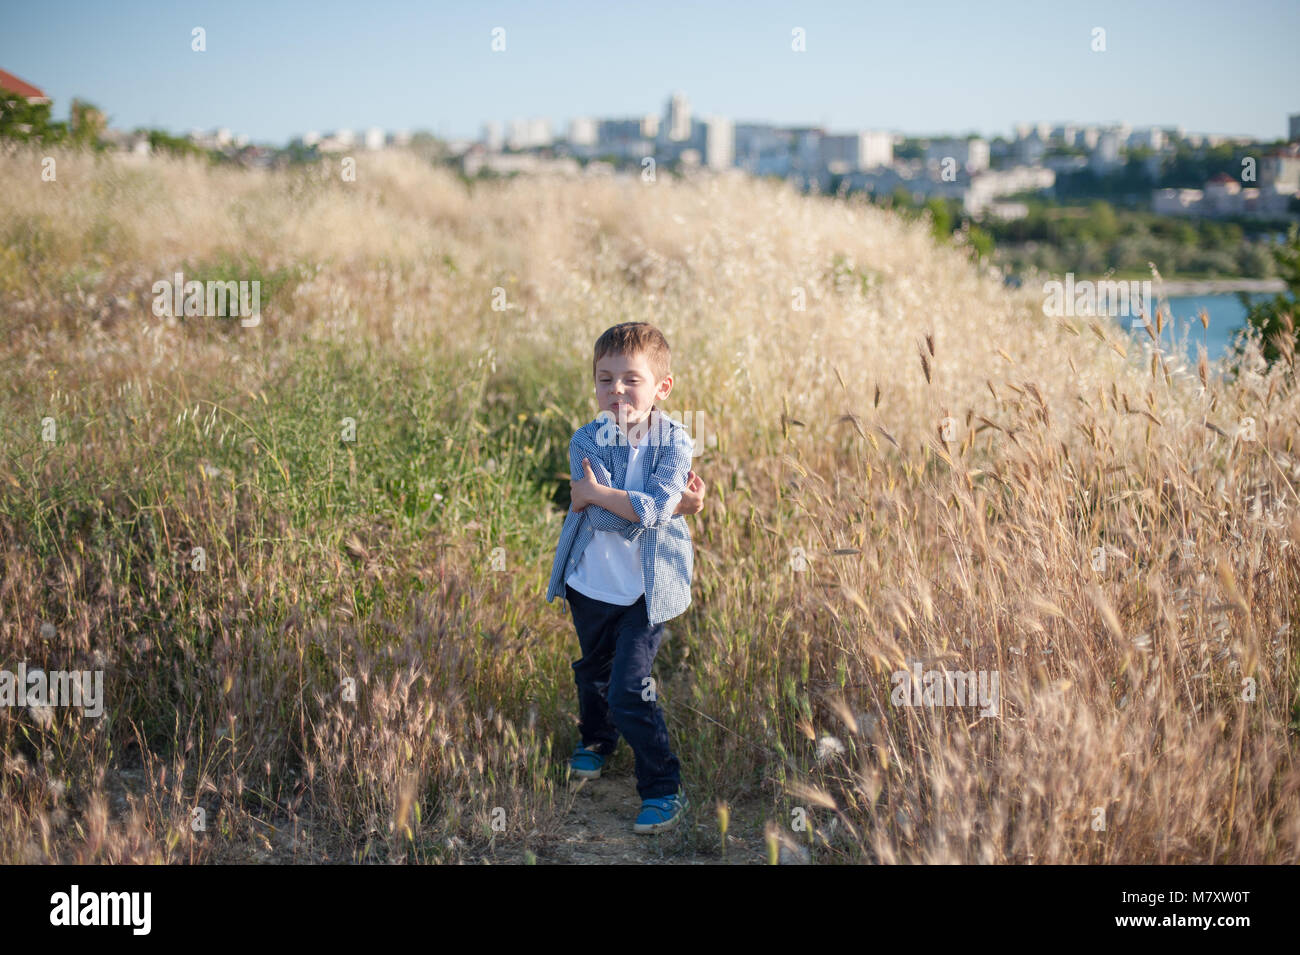 funny cute little boy grimacing standing in the middle of a field of plants - Stock Image